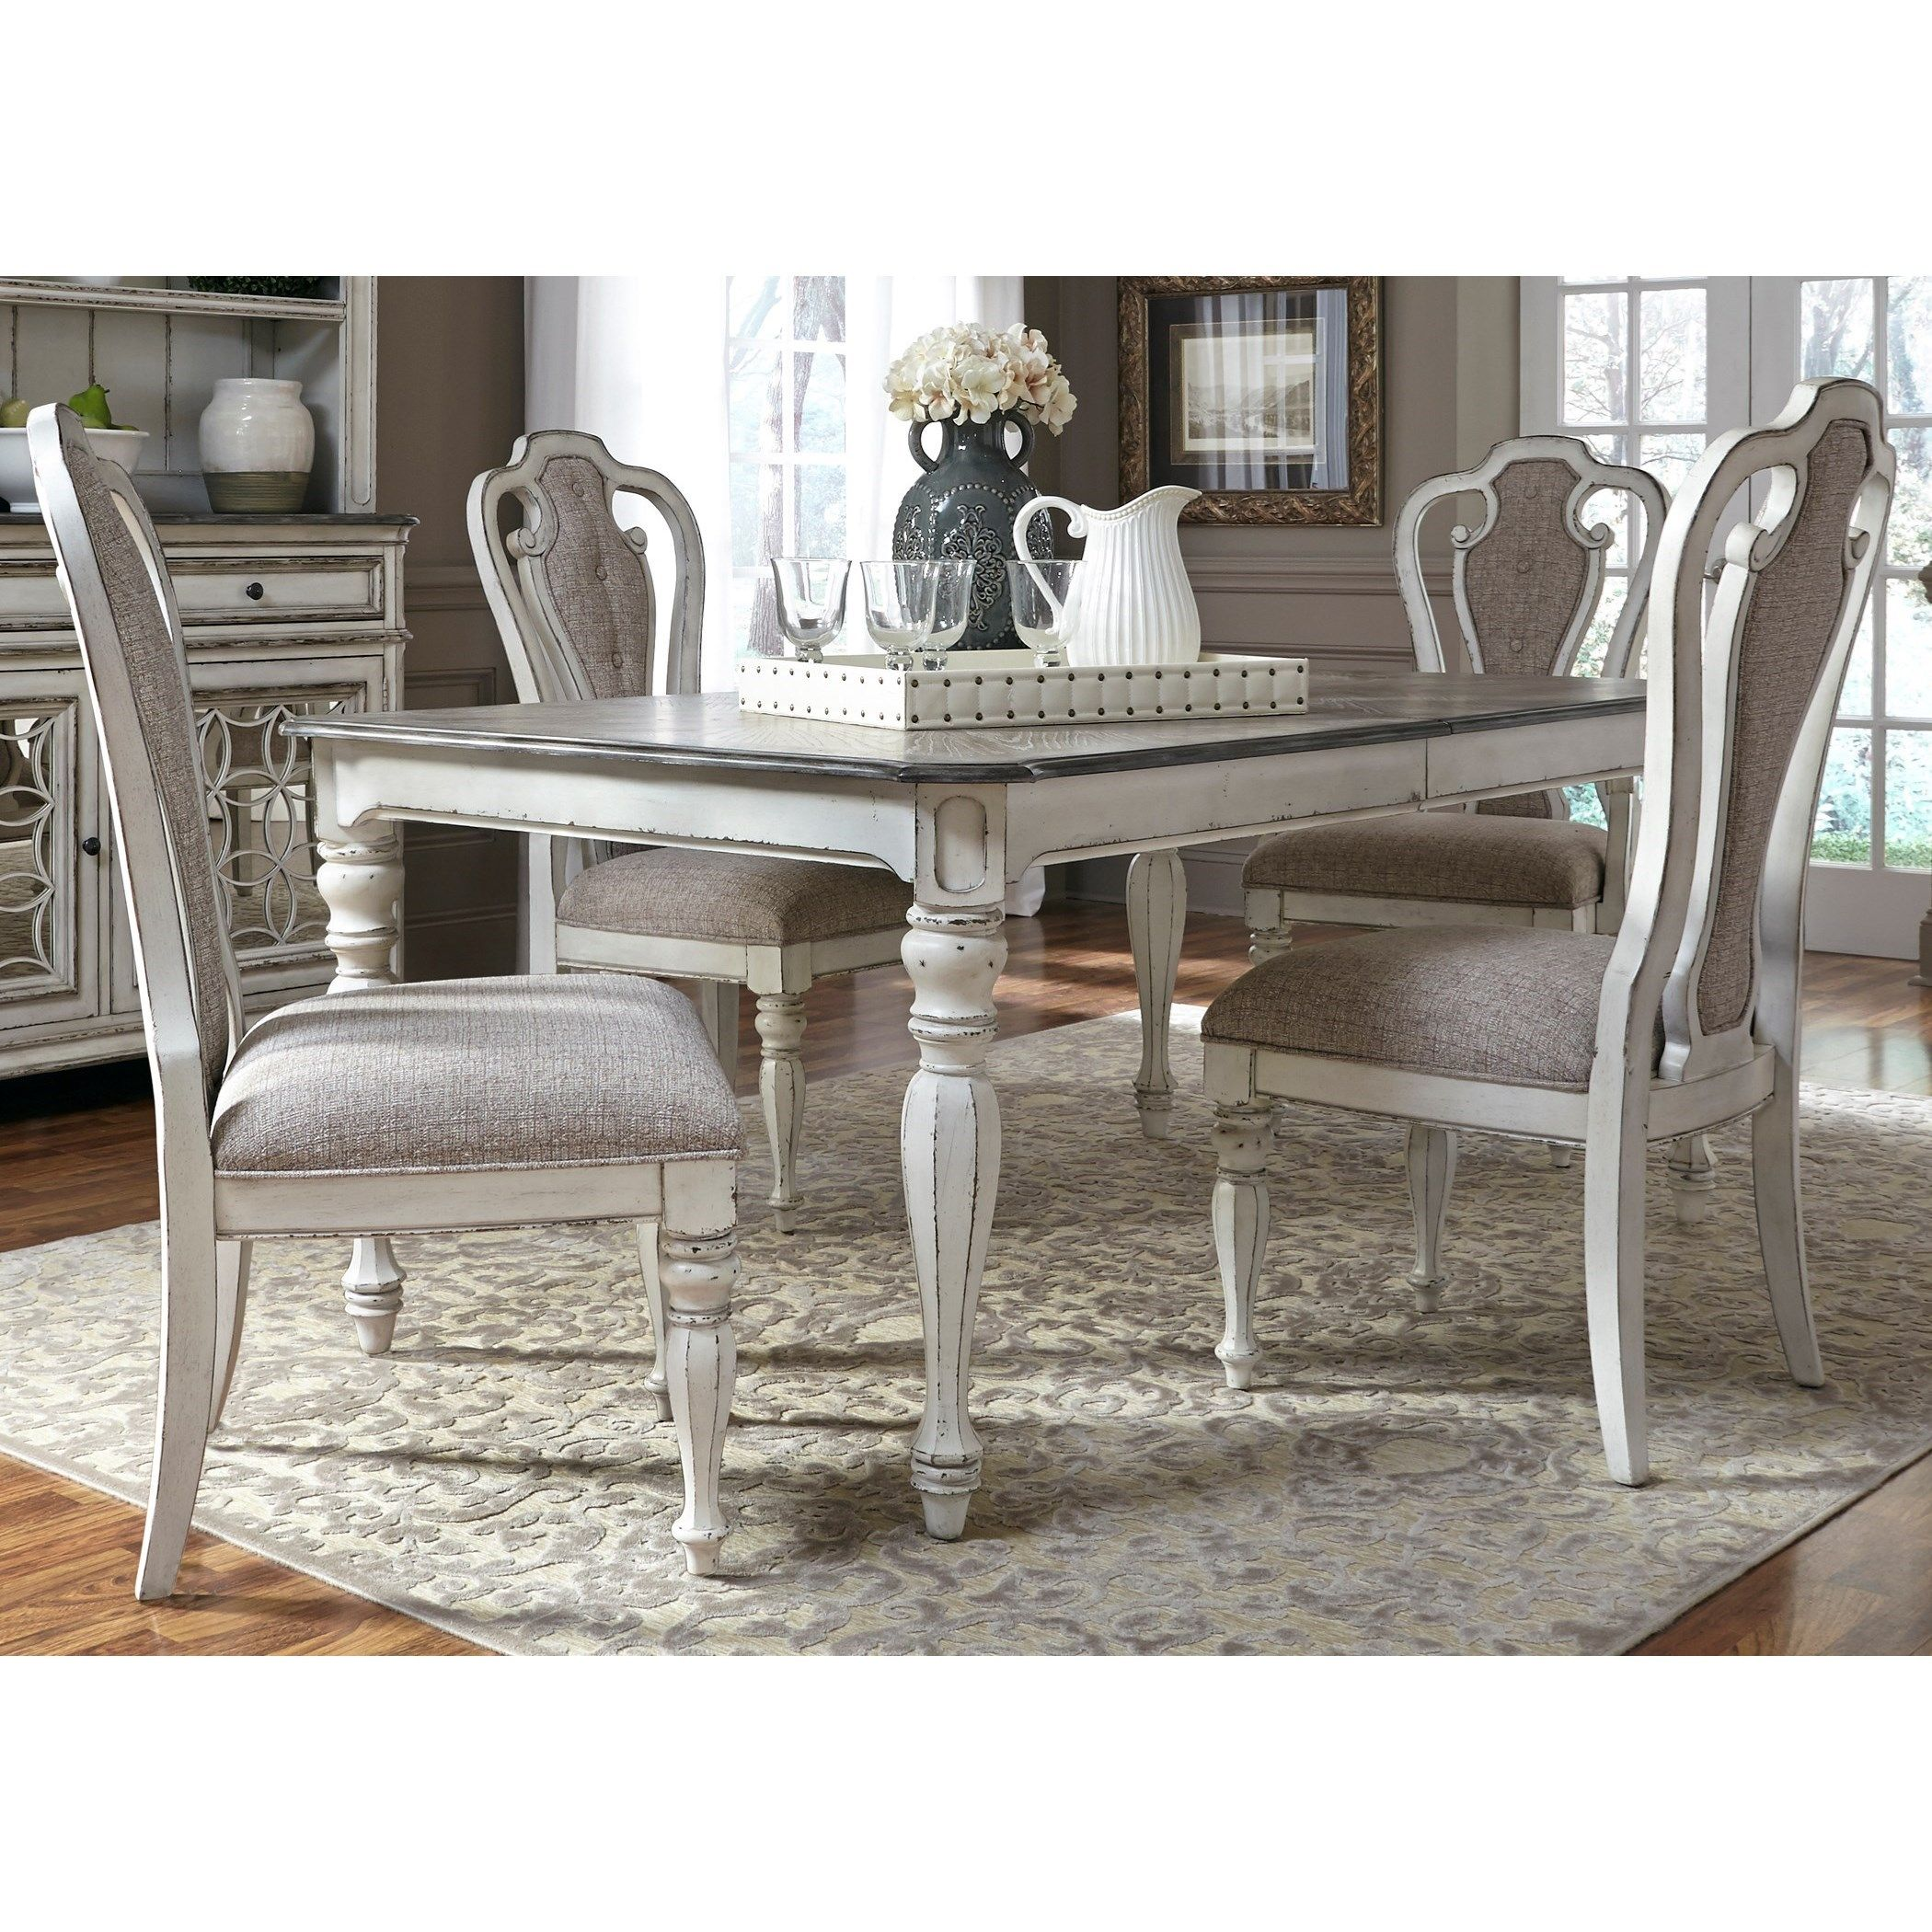 Magnolia Manor Dining 5 Piece Rectangular Table Set With